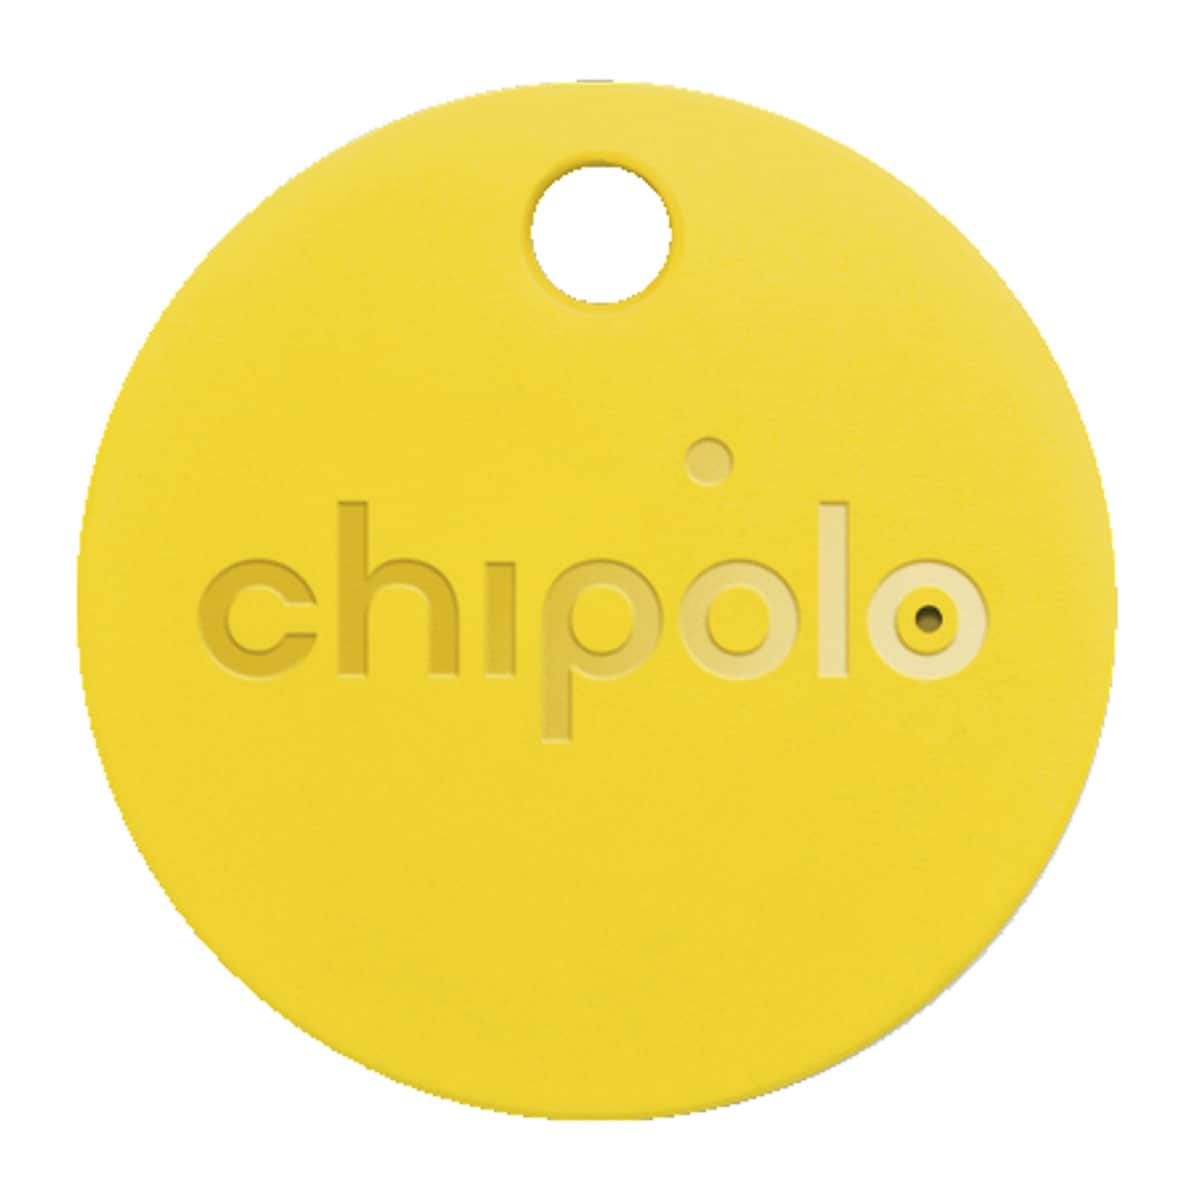 Key Finder Chipolo Classic